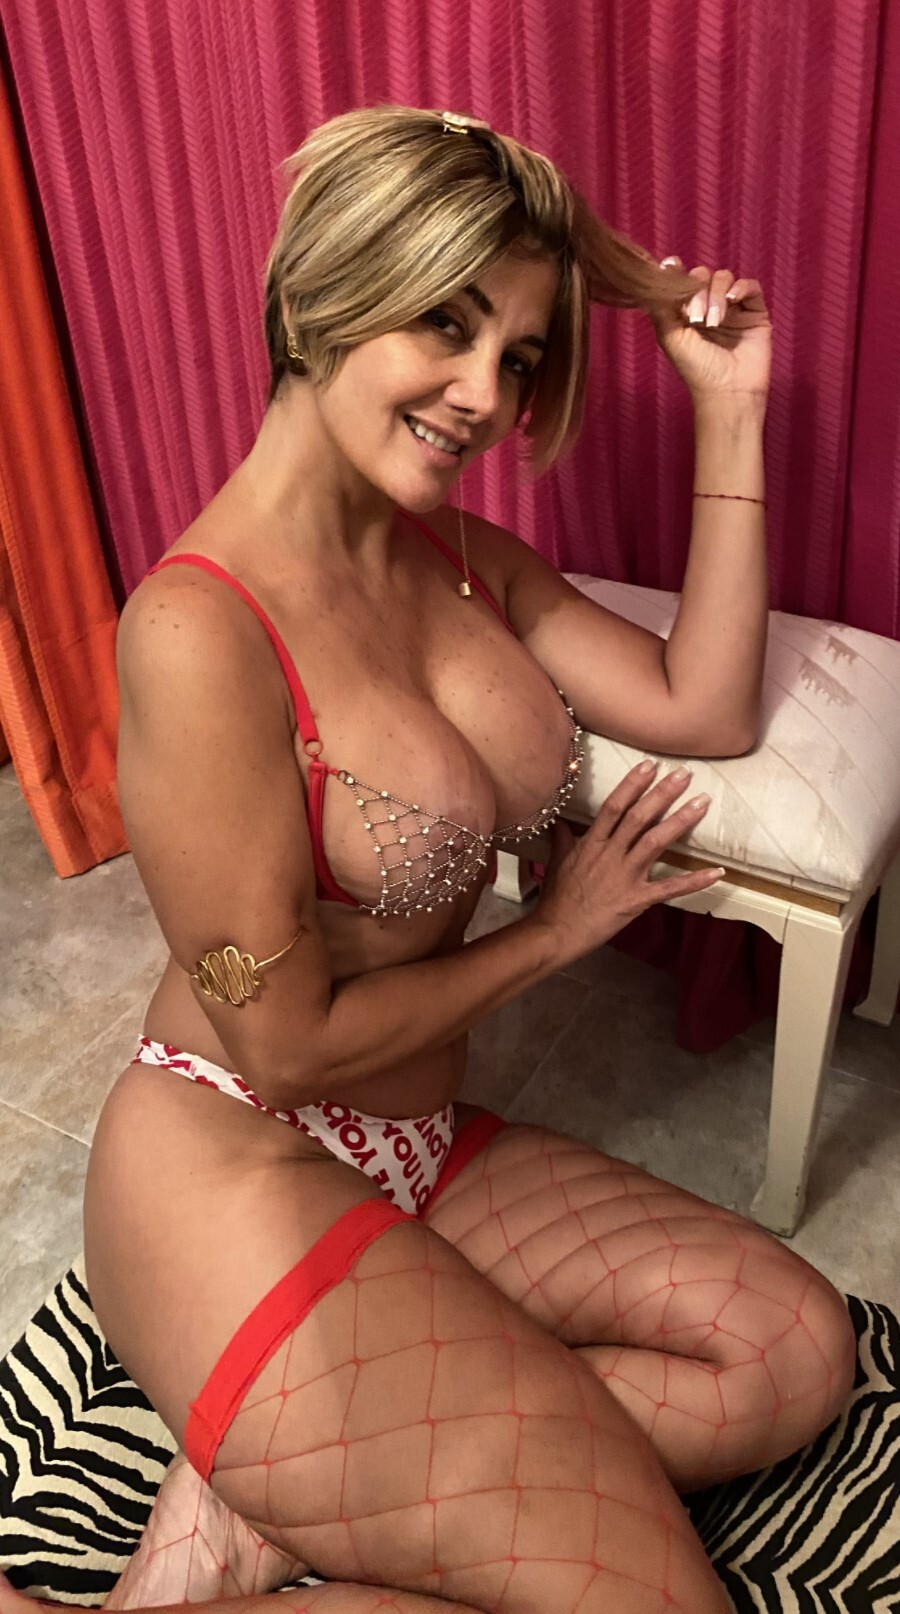 Monicest Mónica Leaked Naked Photos fappenings.com 19